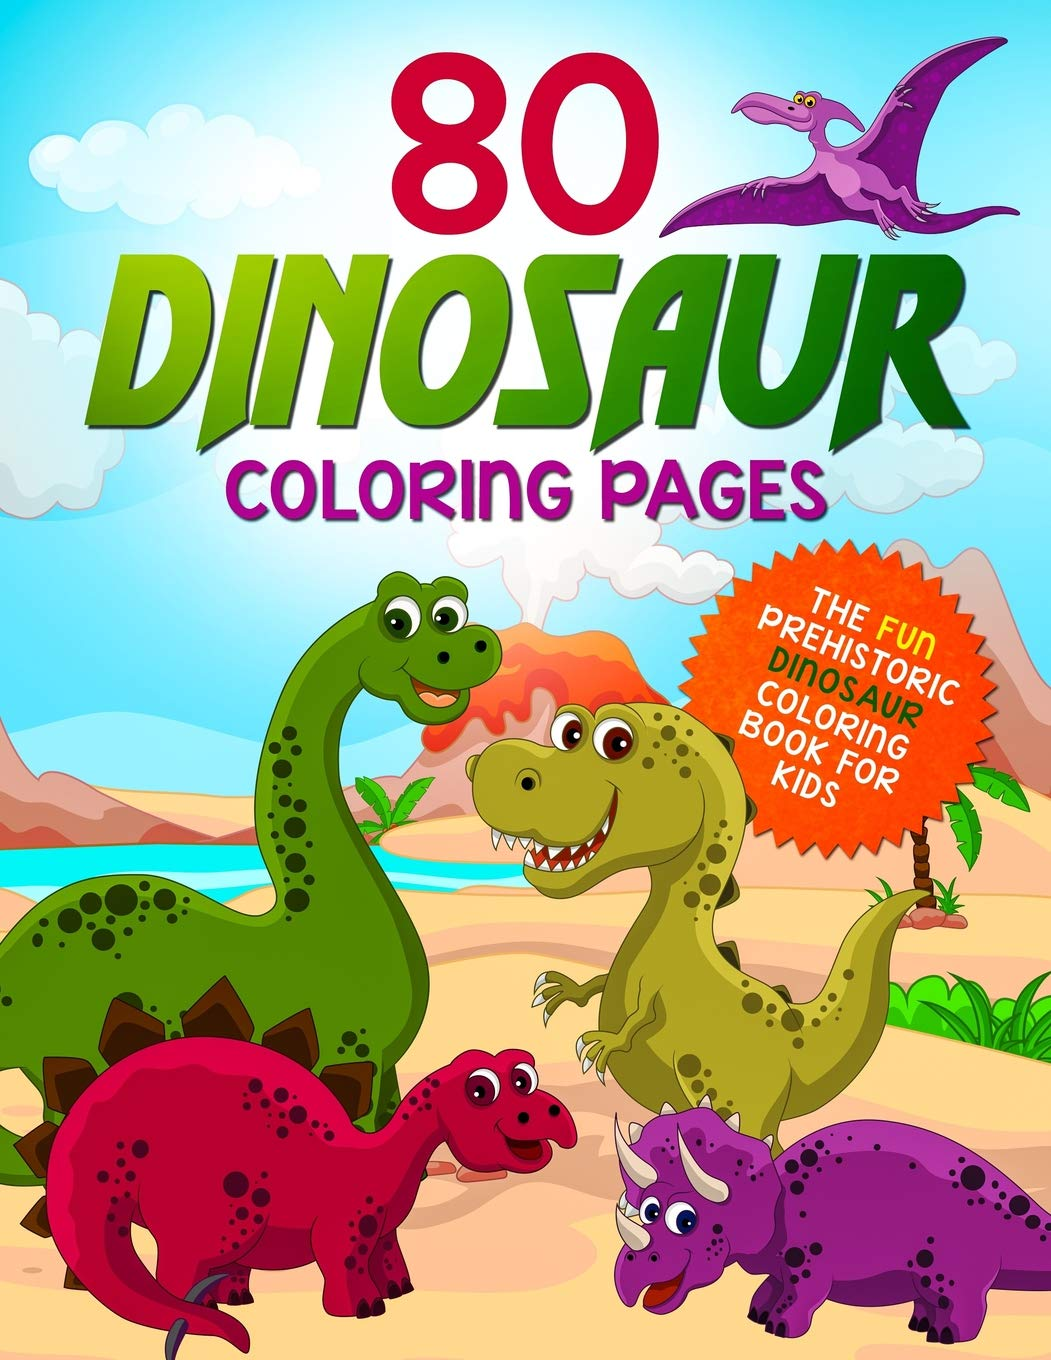 80 Dinosaur Coloring Pages: The Fun Prehistoric Dinosaur ...